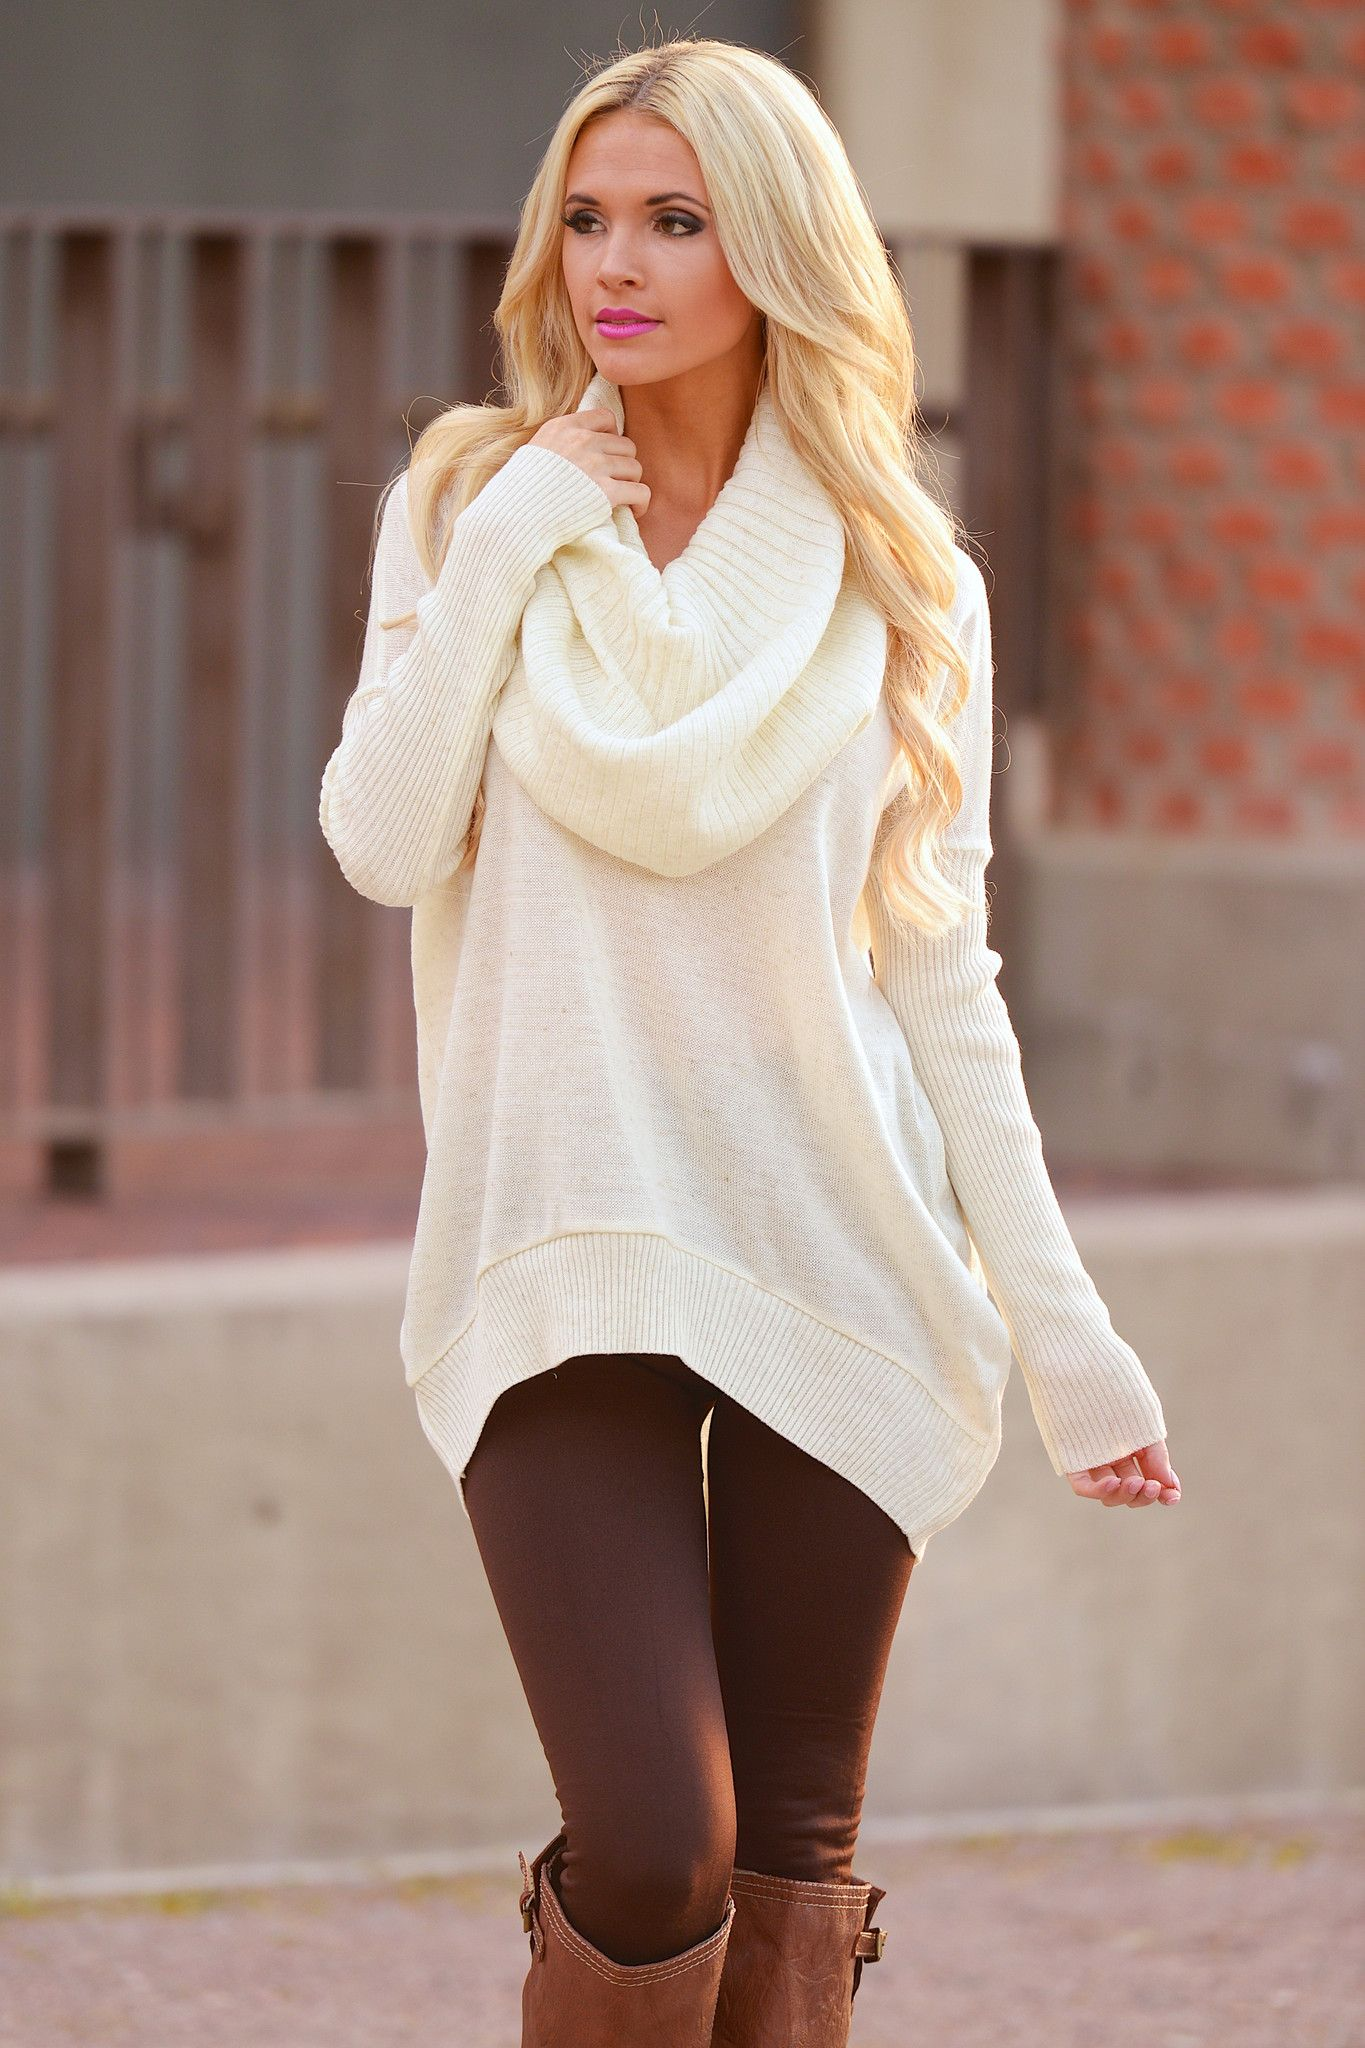 095d50421fa9d2 Where Sweet Time Takes Us Sweater - Ivory | Work Outfits in 2019 ...